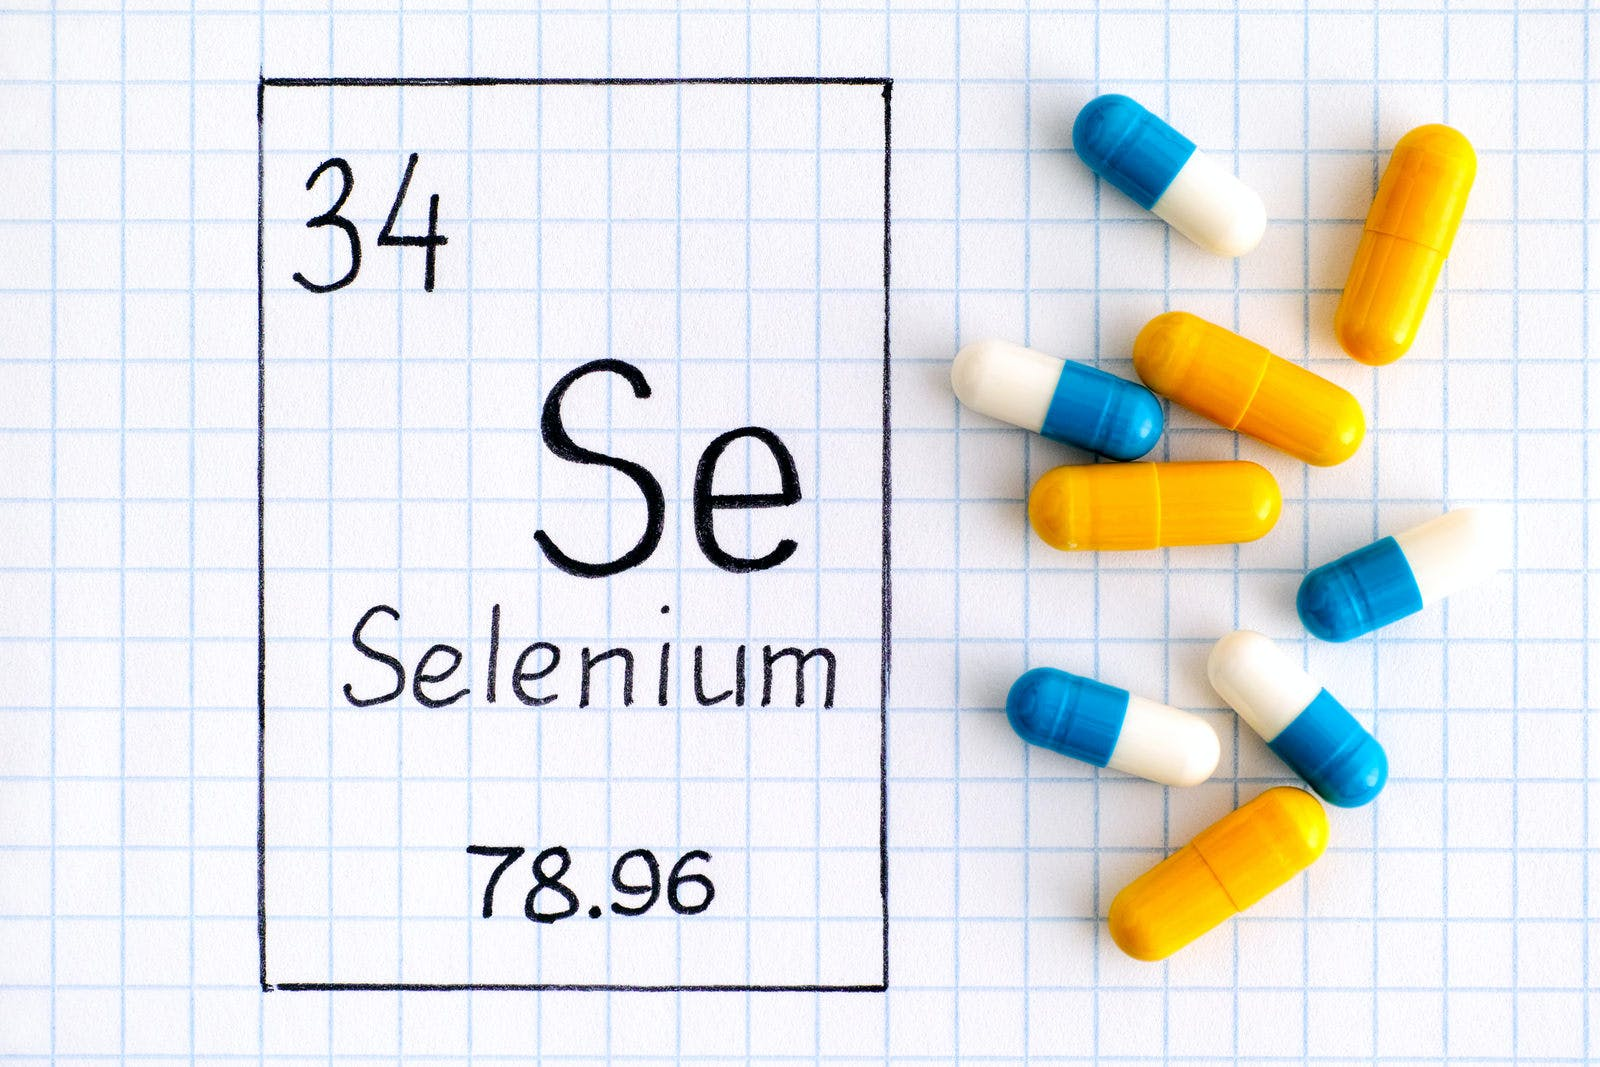 selenium supplements and chemical name